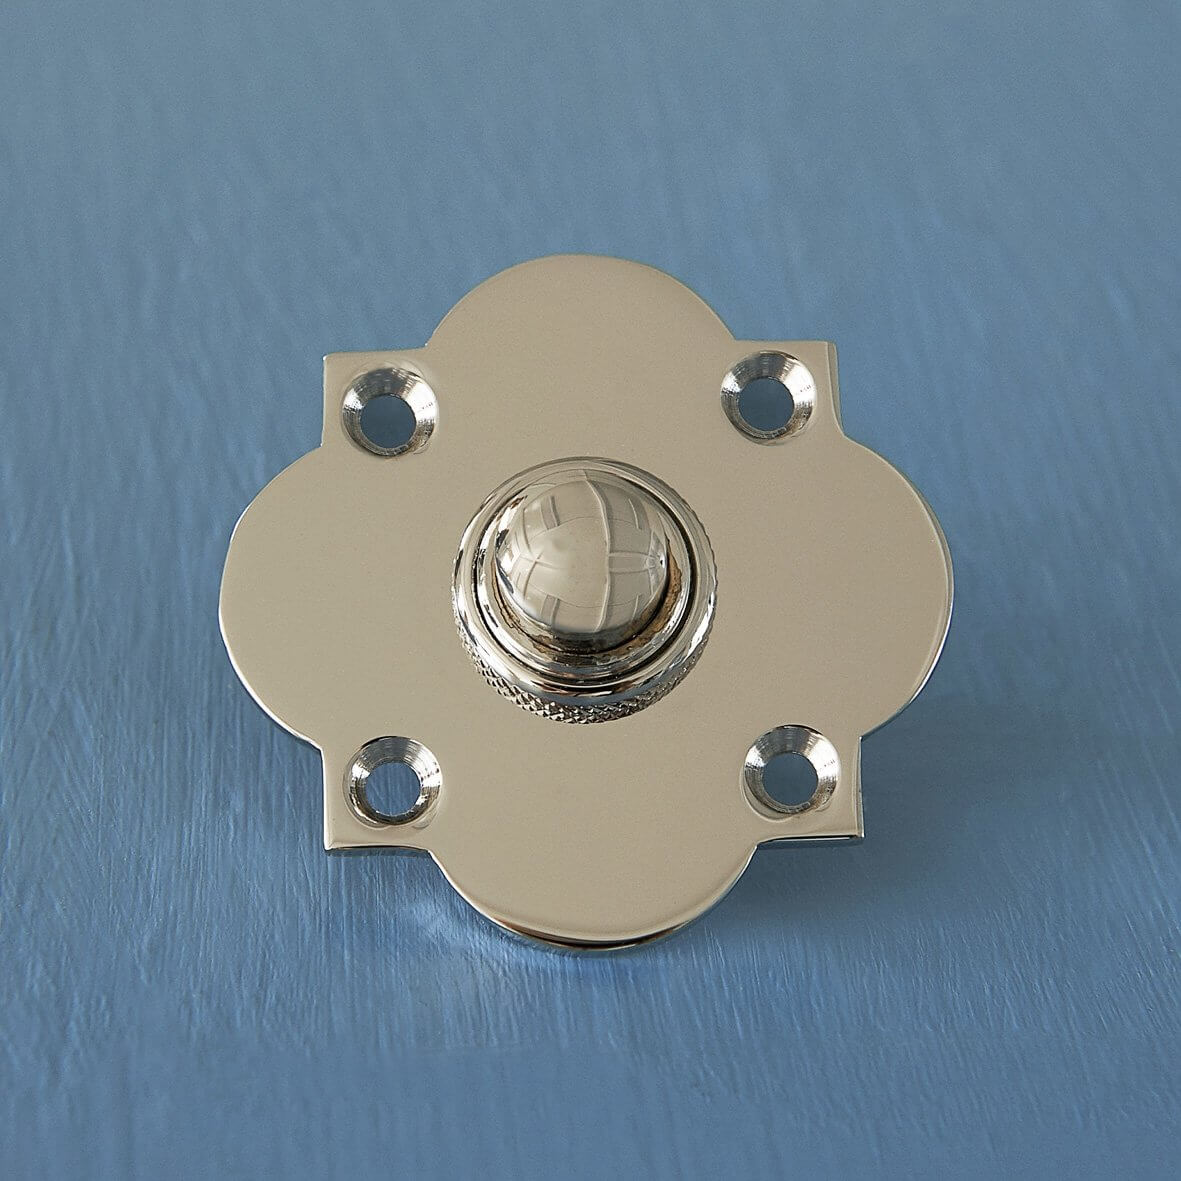 Quatrefoil Bell Push - Polished Nickel